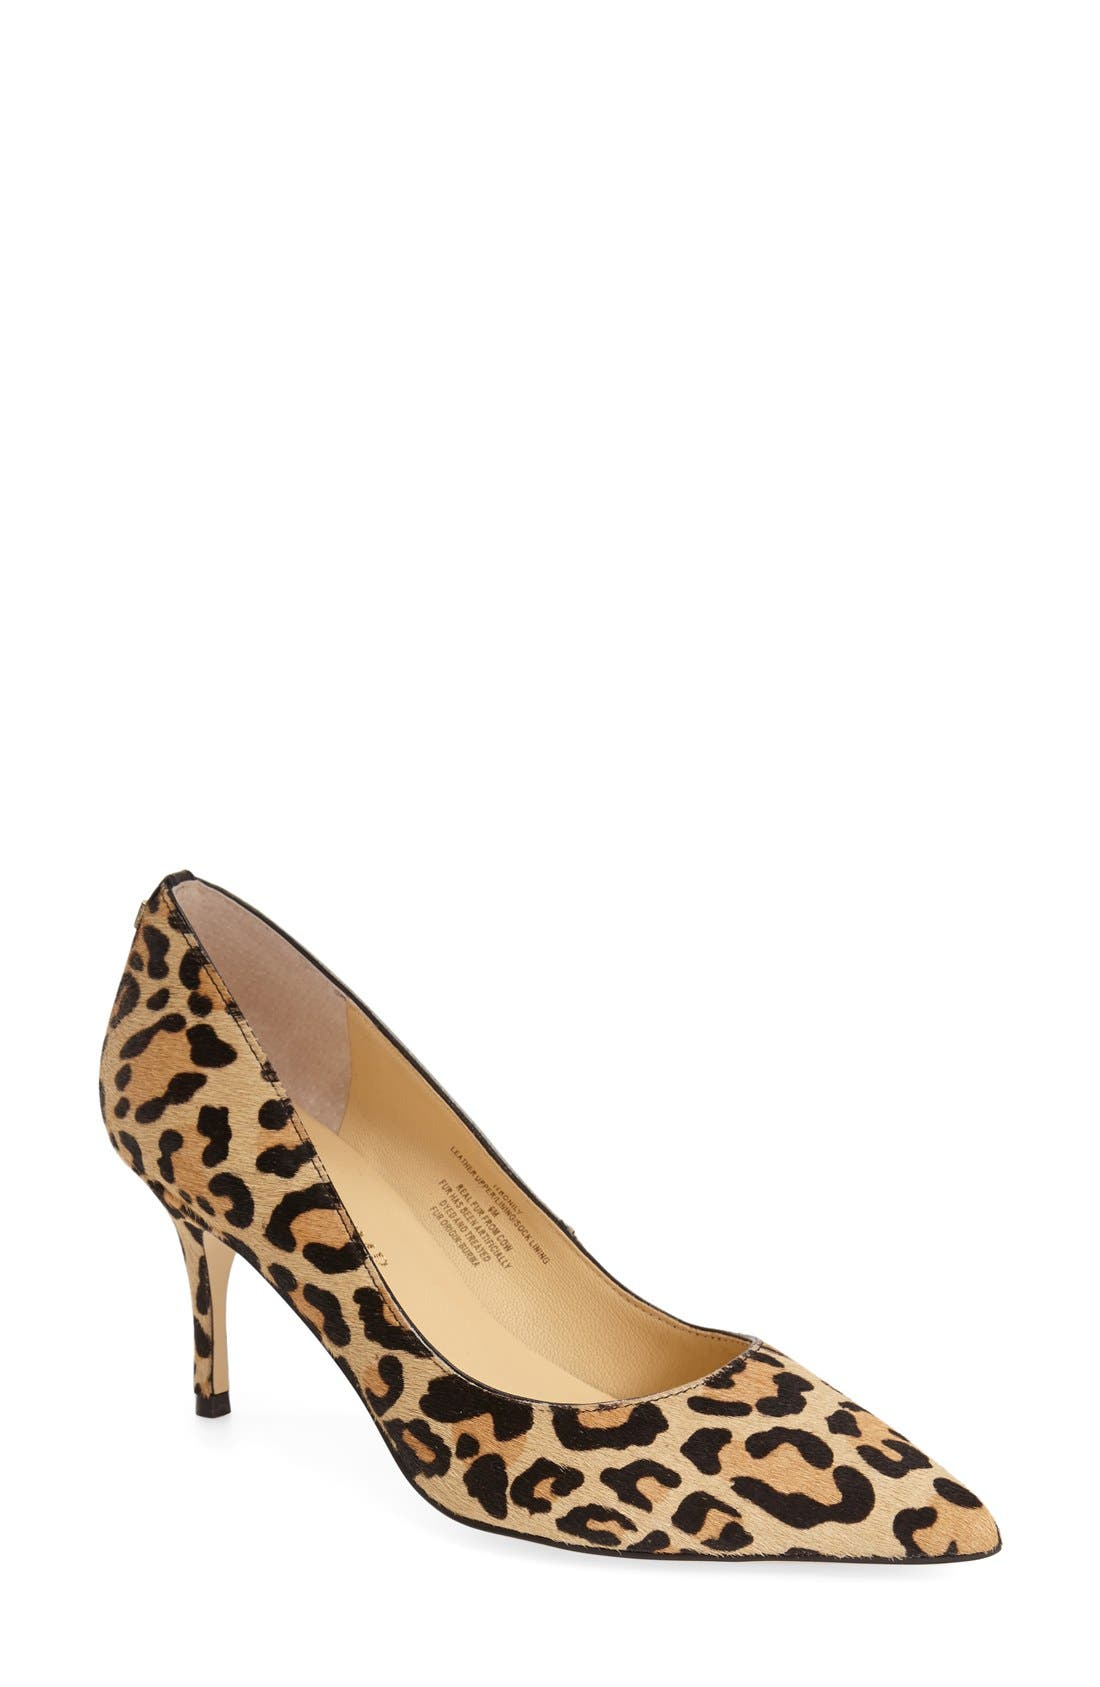 Alternate Image 1 Selected - Ivanka Trump 'Boni' Calf Hair Pointy Toe Pump (Women)